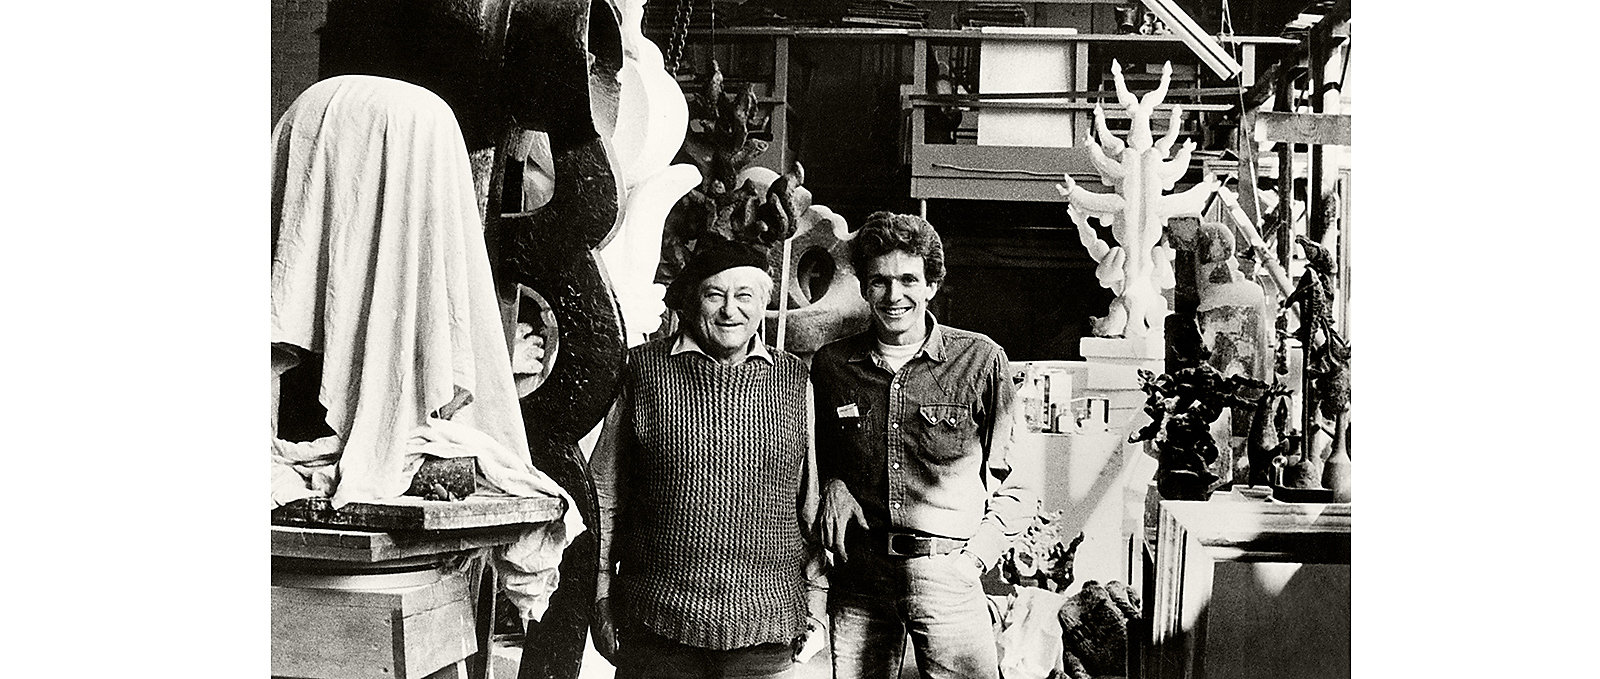 Sculptor Jacques Lipchitz with David Yurman, apprentice, in the artist's studio, Hastings-on-Hudson, New York, 1963